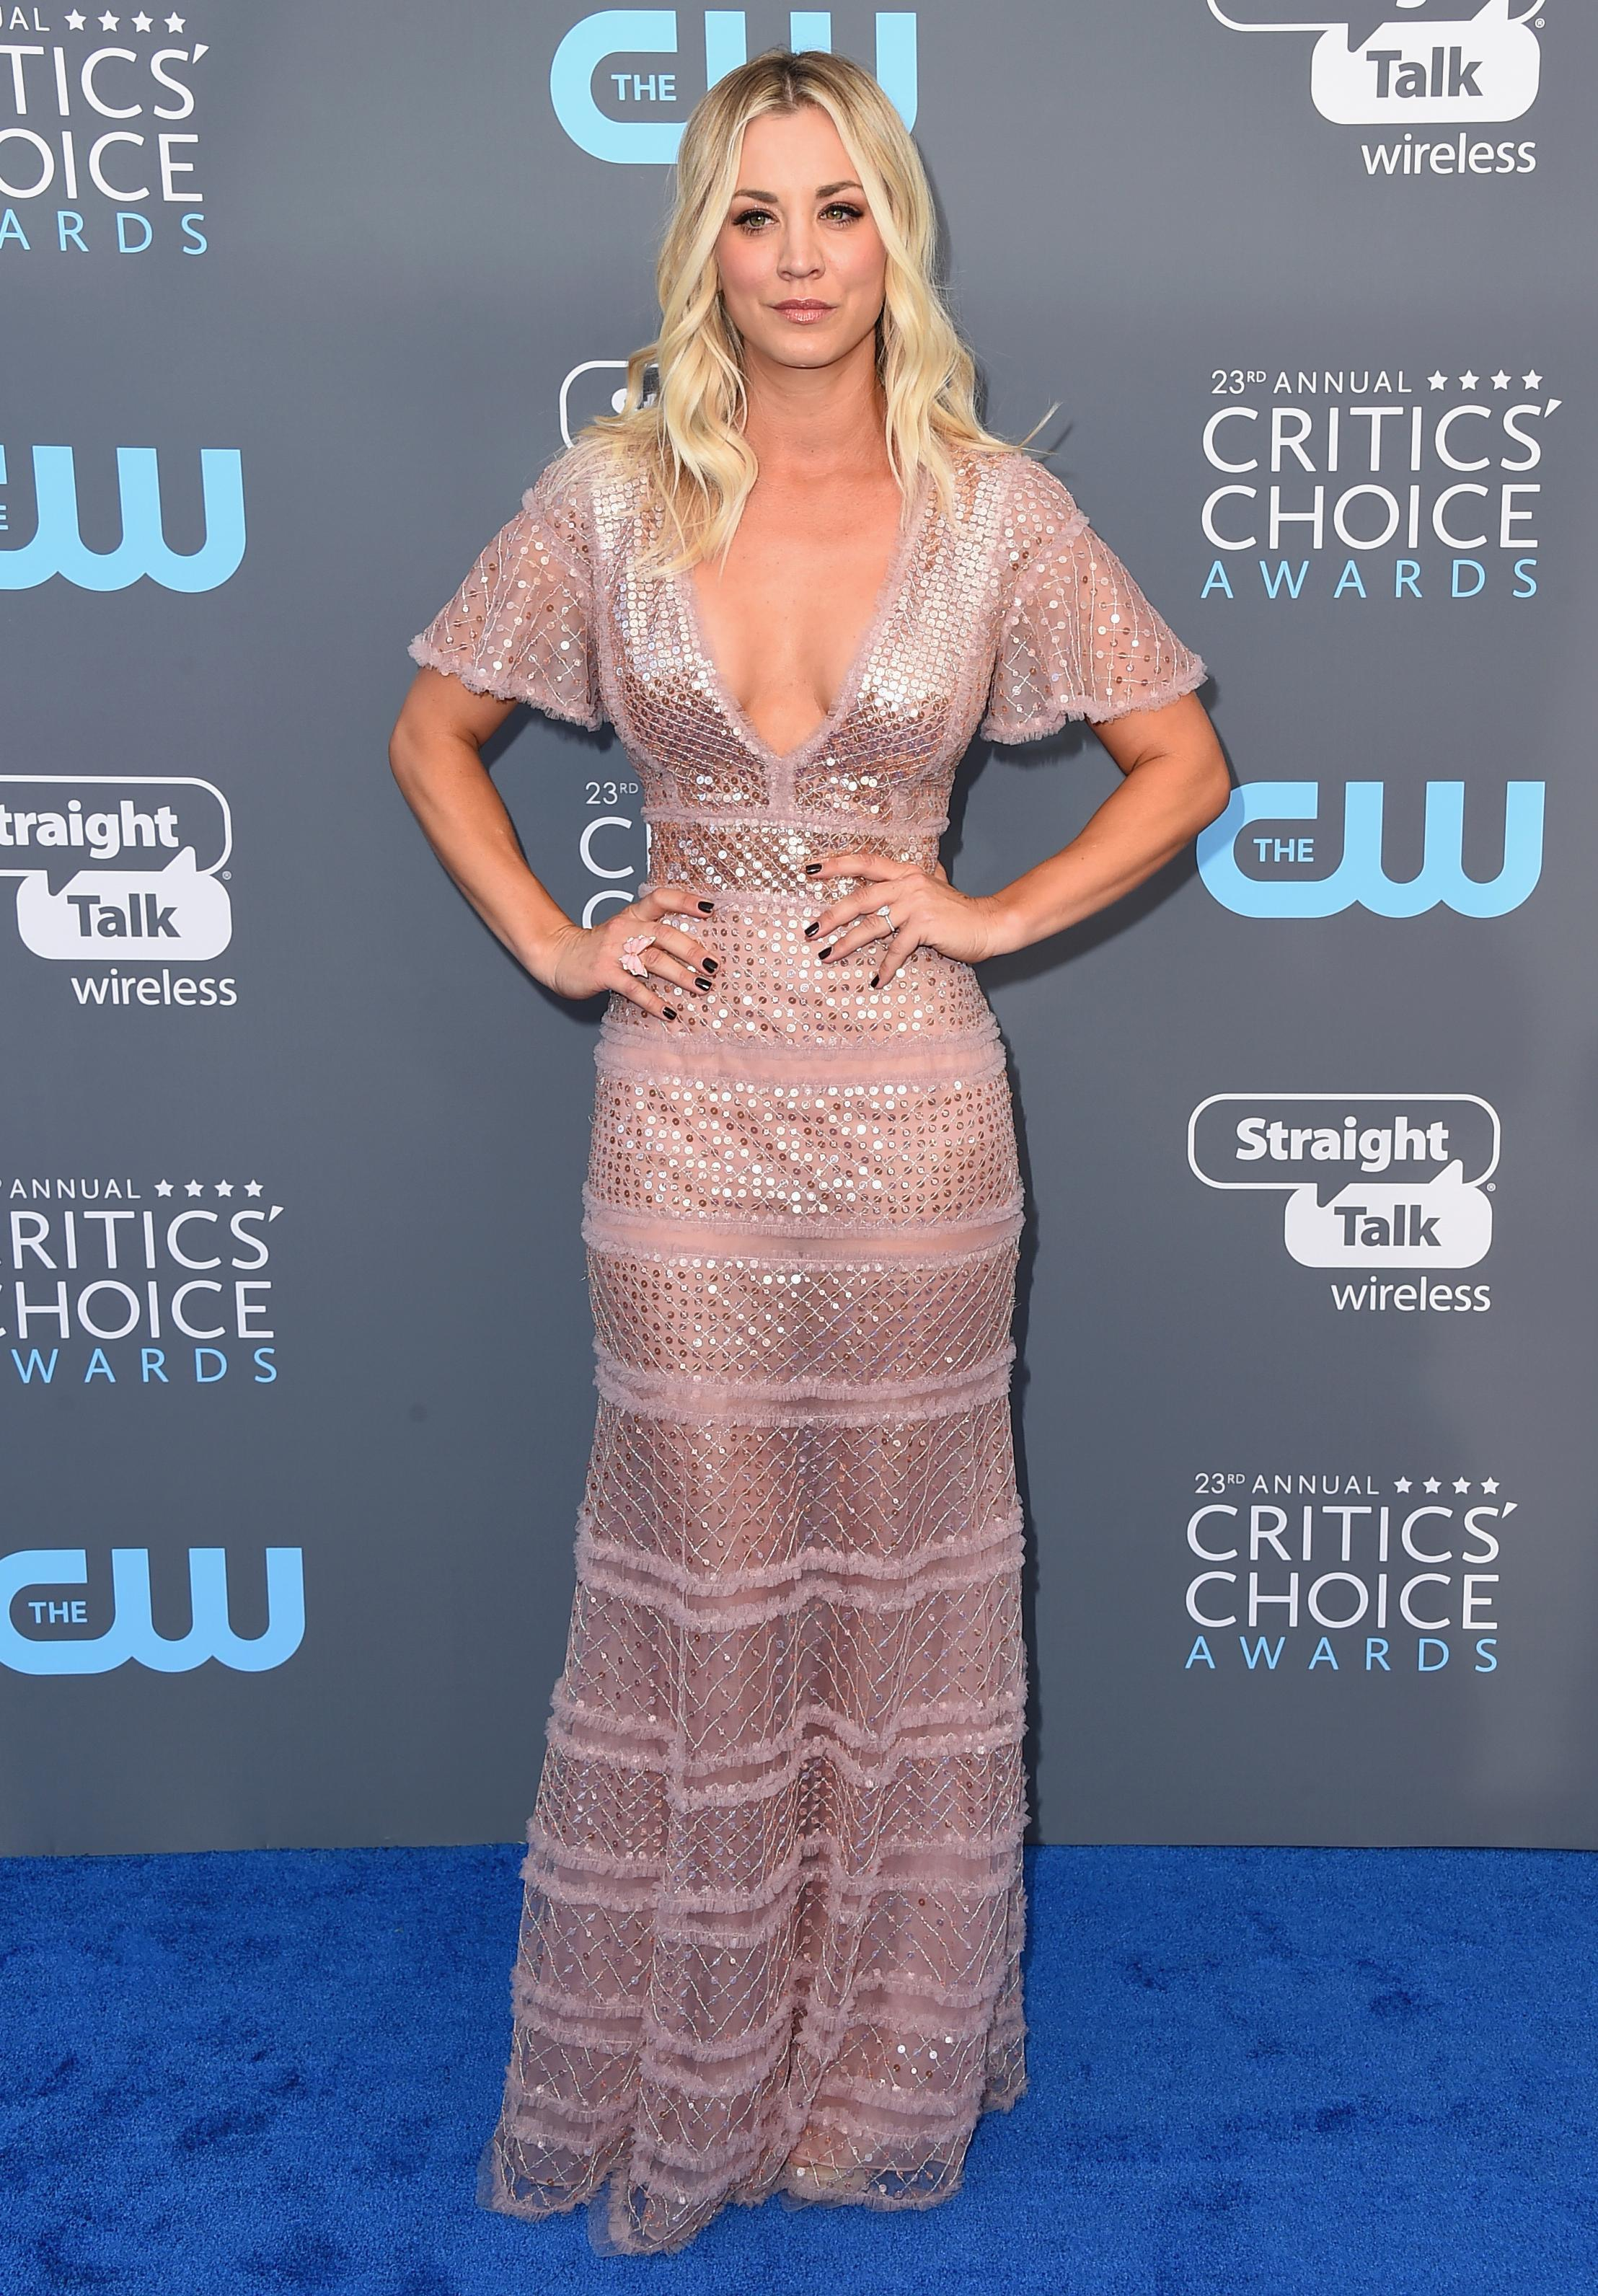 Kaley Cuoco arrives at the 23rd annual Critics' Choice Awards at the Barker Hangar on Thursday, Jan. 11, 2018, in Santa Monica, Calif. (Photo by Jordan Strauss/Invision/AP)